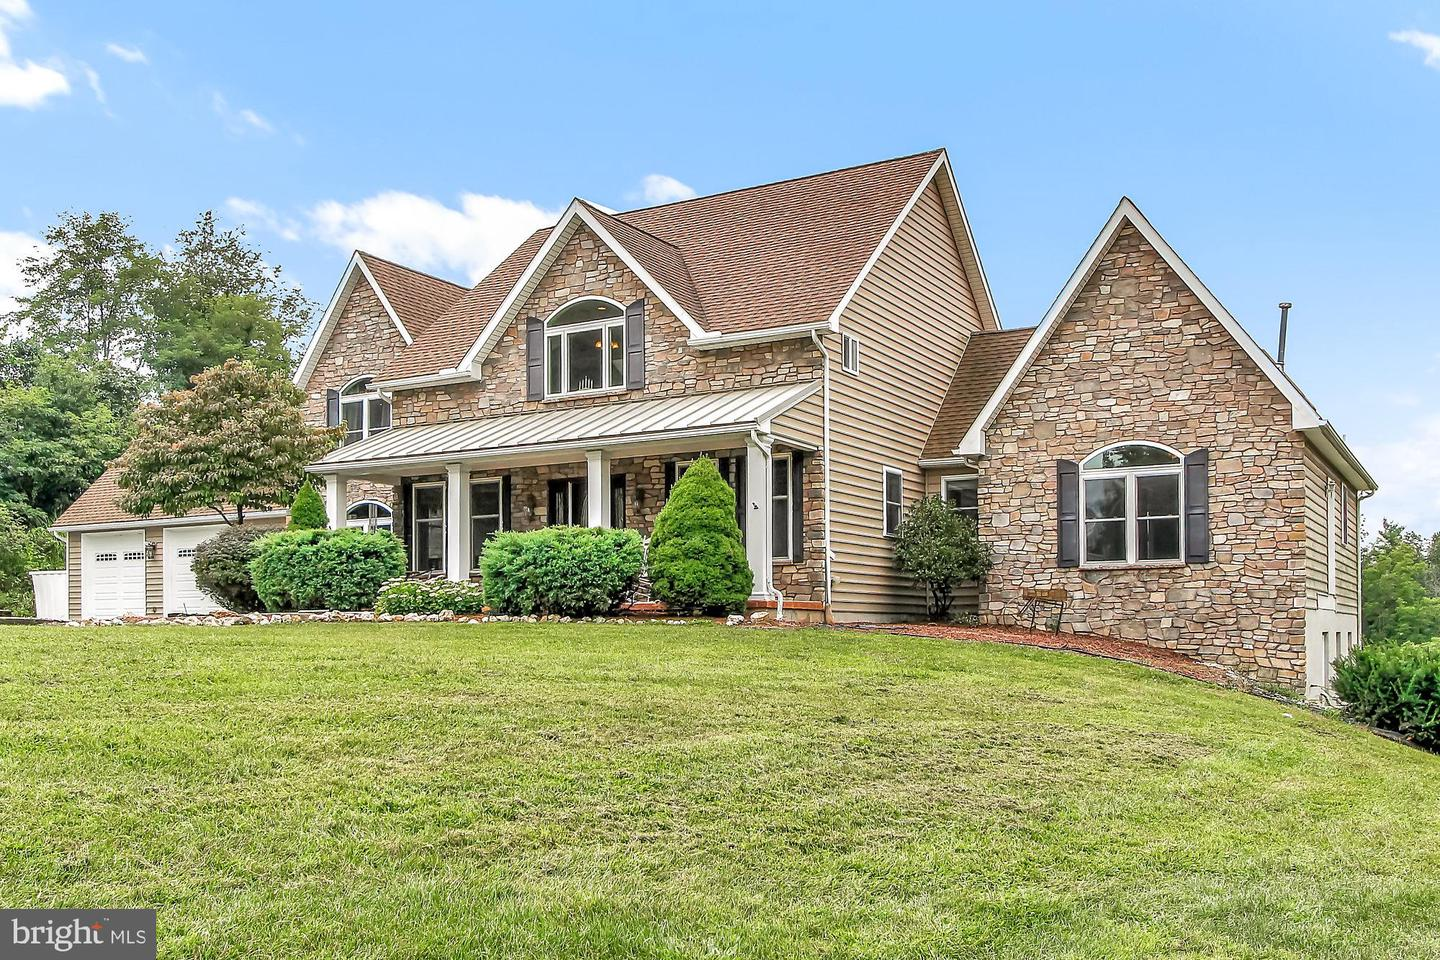 1950 YINGLING DR, SPRING GROVE, PA 17362